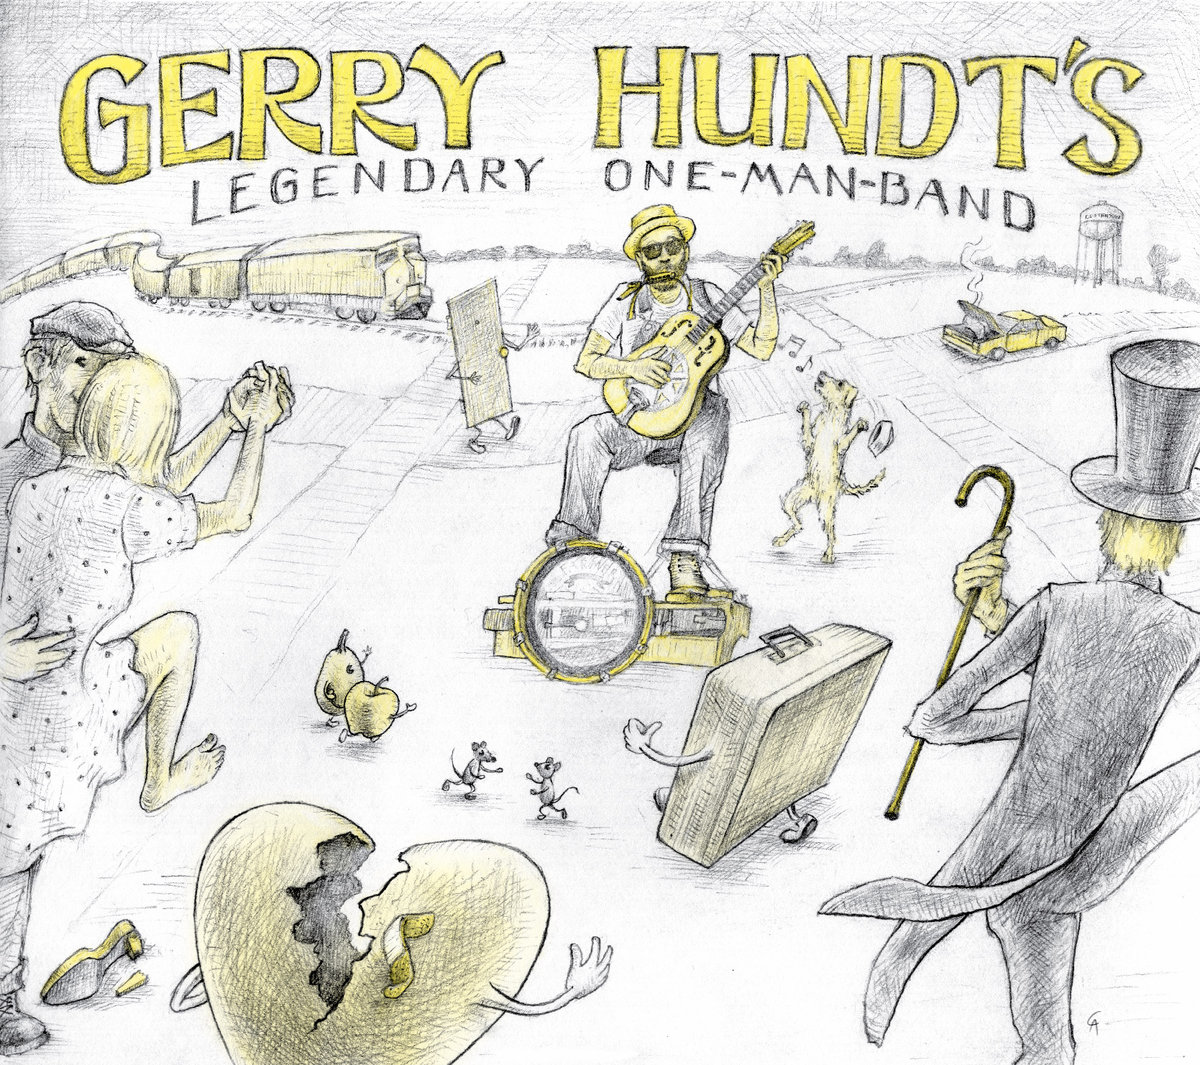 180613_Gerry_Hundt's_Legendary_One-Man-Band